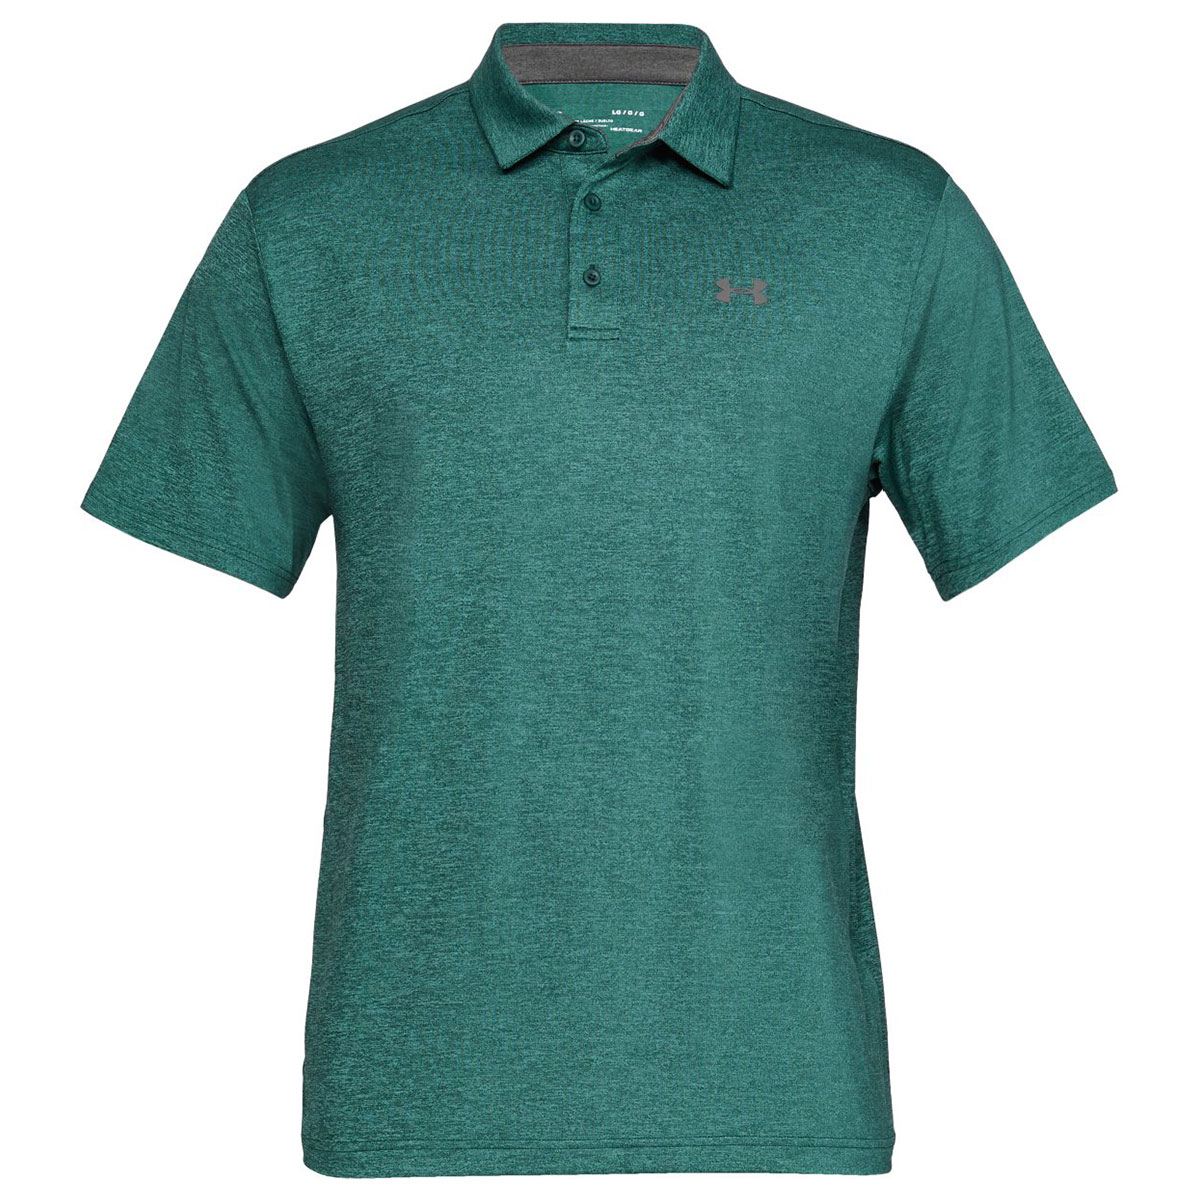 Under-Armour-Mens-2019-Playoff-Polo-2-0-Breathable-Light-Stretch-Polo-Shirt thumbnail 25